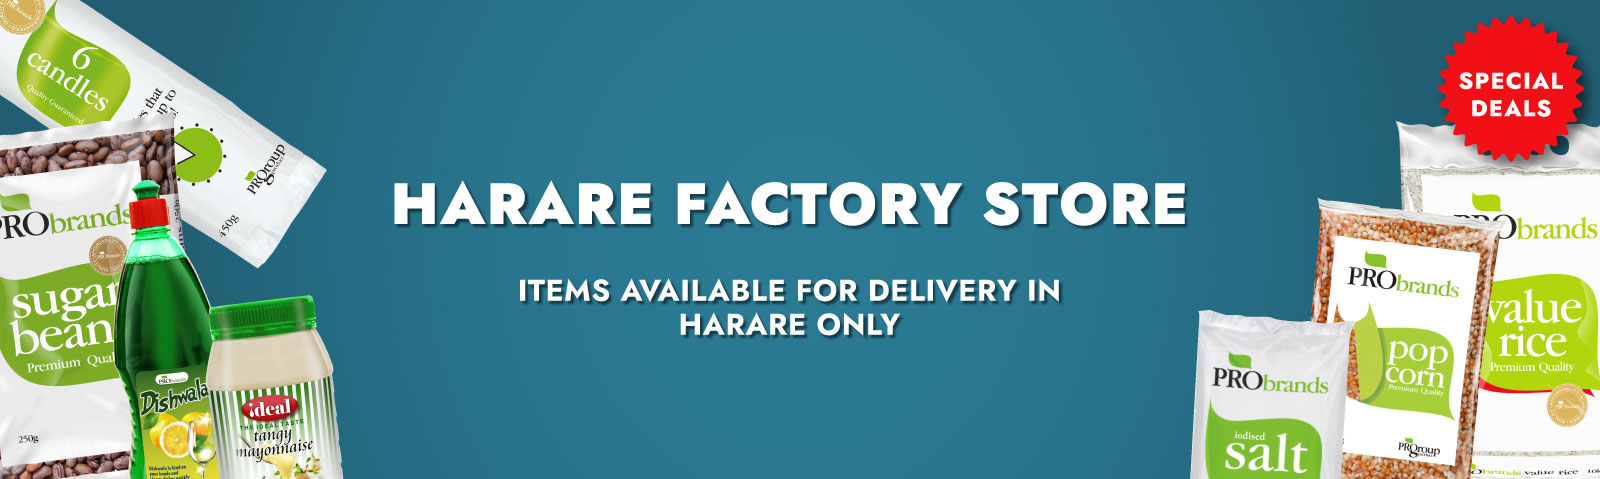 Harare Factory Store